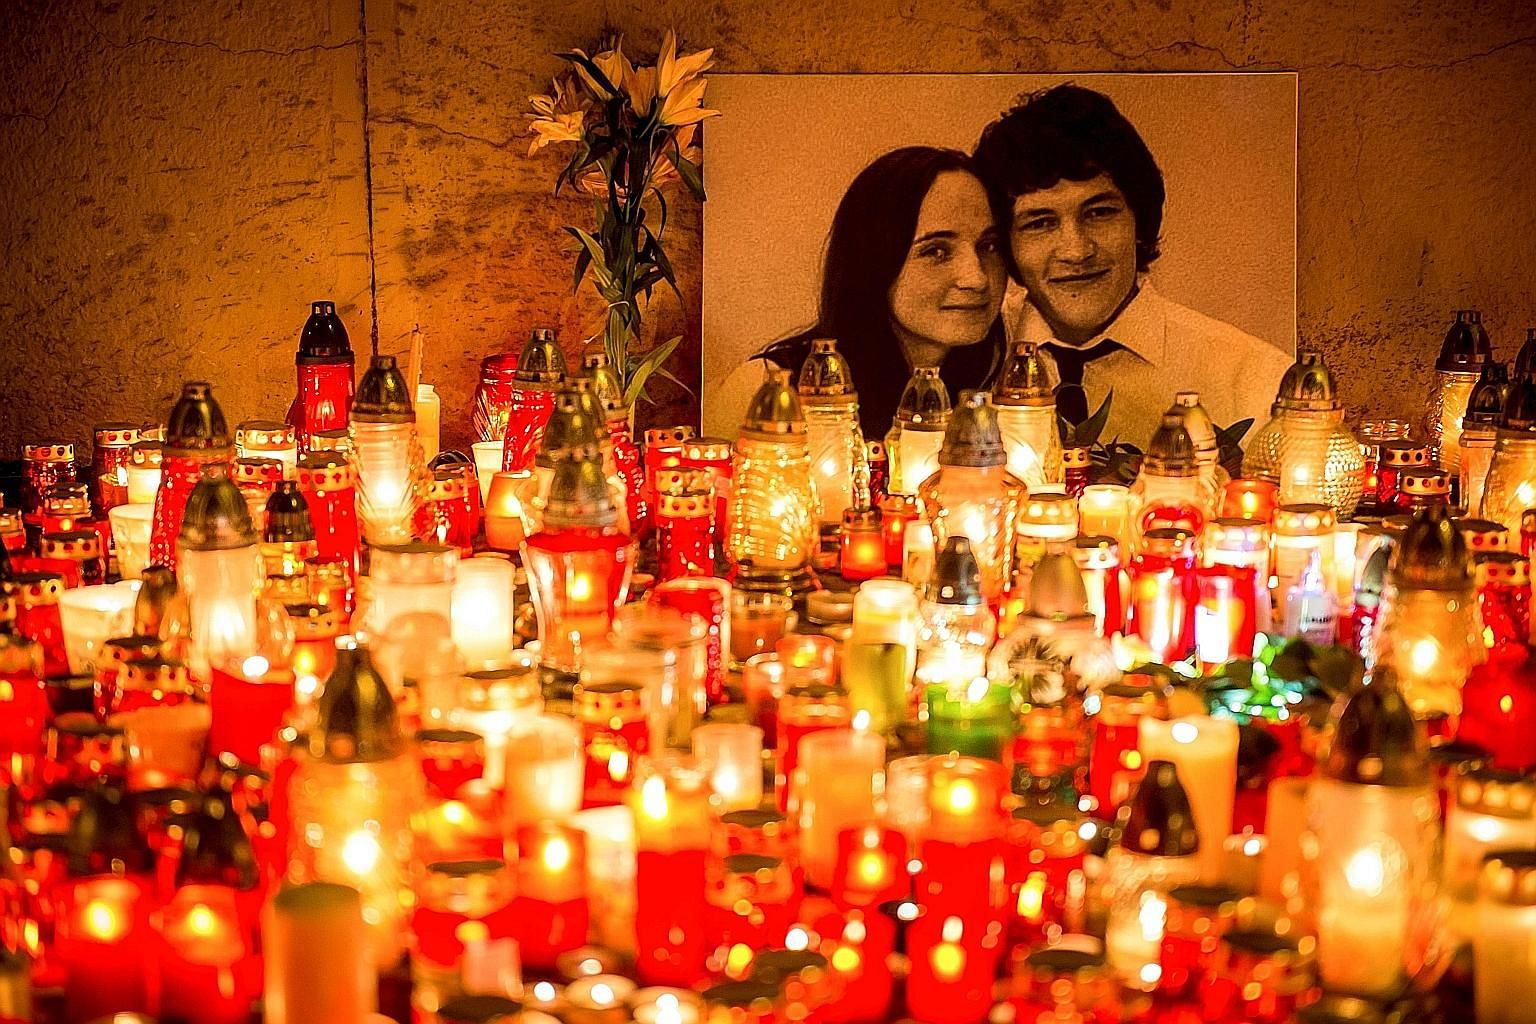 Slovakian journalist Jan Kuciak and his fiancee were shot dead in their home about two months ago, apparently by local mafia.